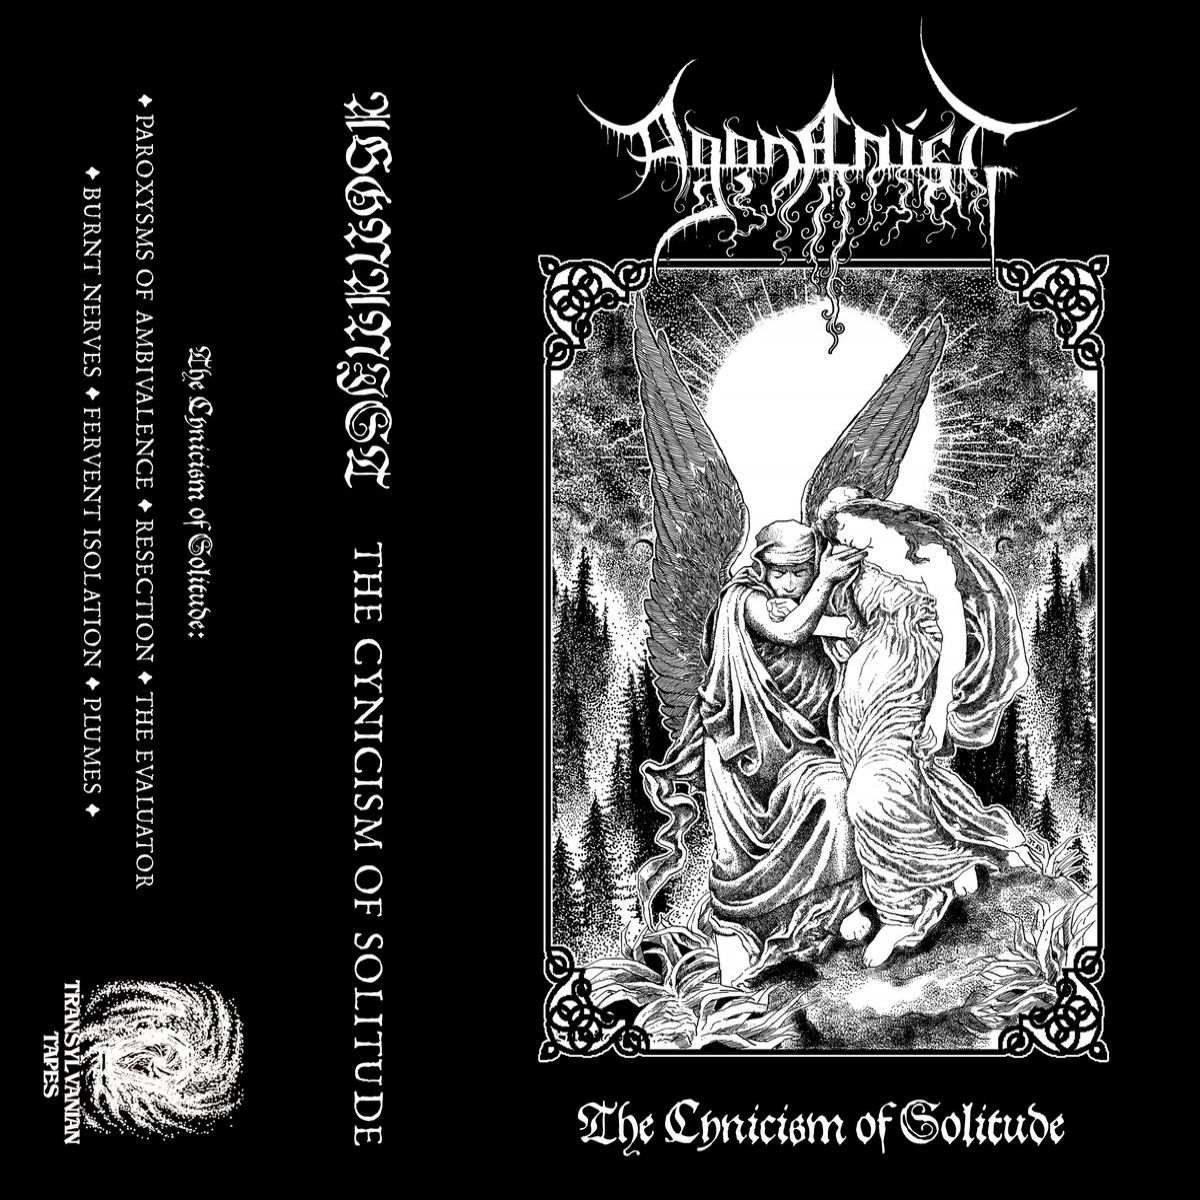 Agonanist - The Cynicism of Solitude